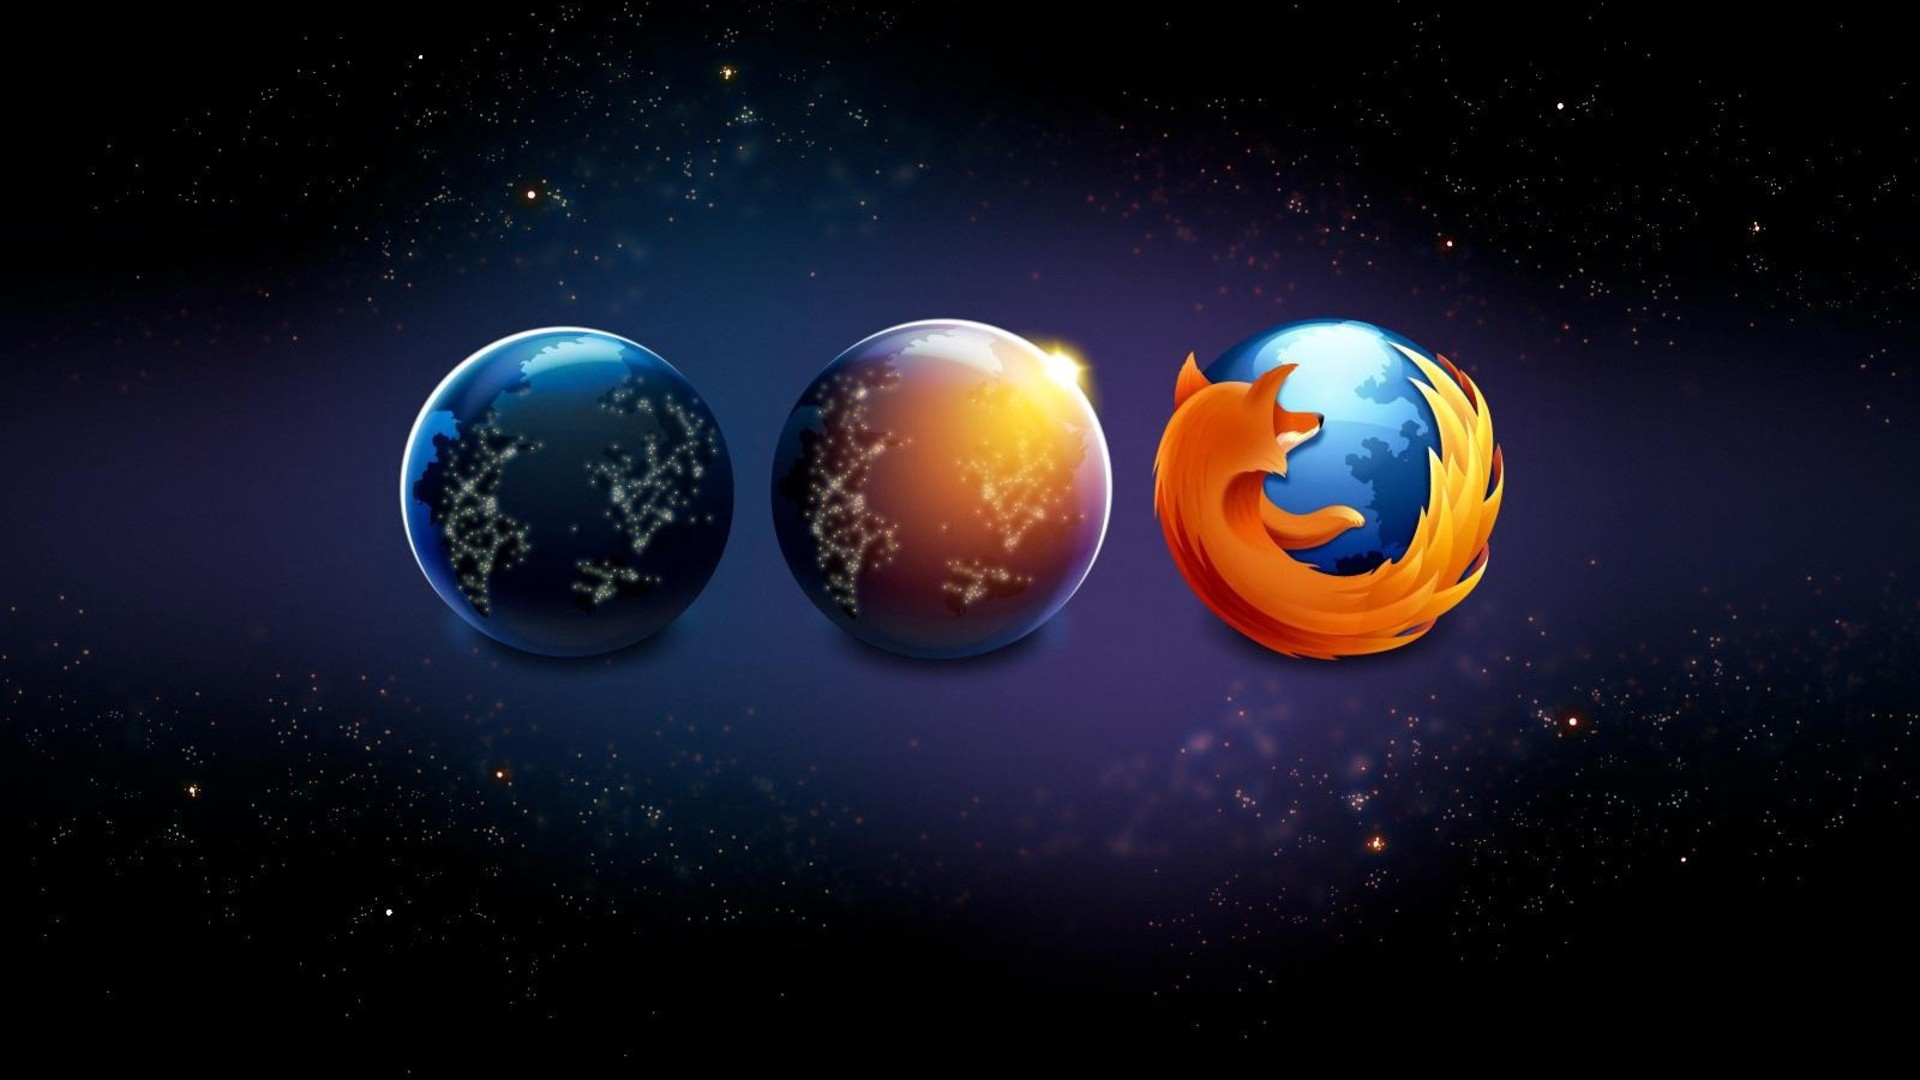 Earth firefox aurora wallpaper 9608 - How to change firefox background image ...